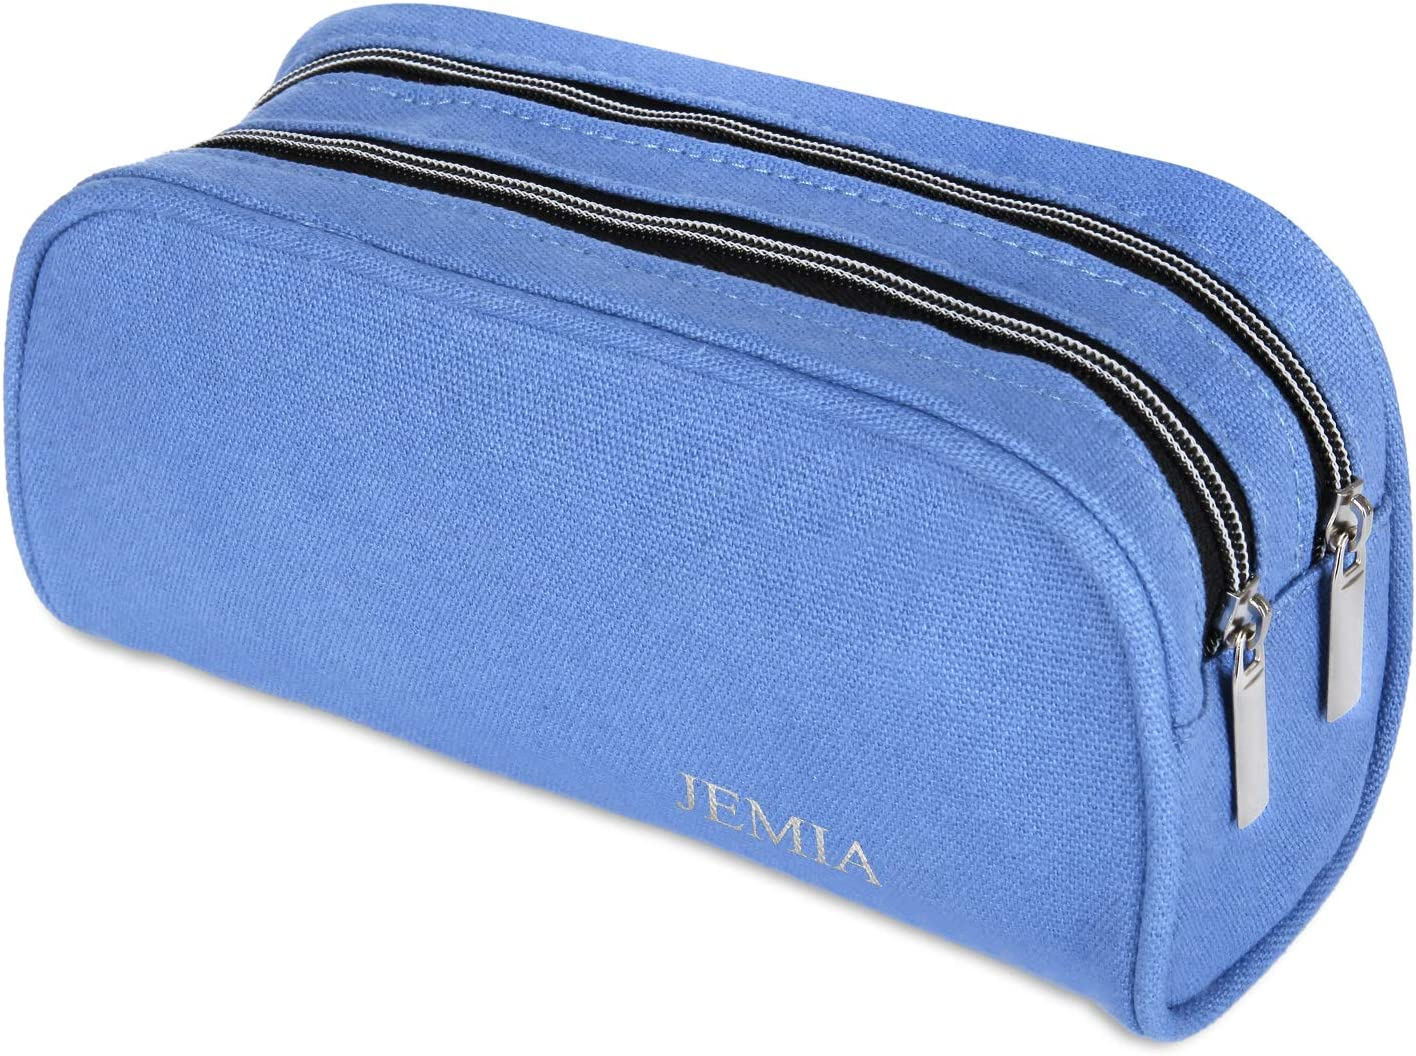 JEMIA Dual Compartments Collection 2 Independent Zipper Chambers with Mesh Pockets Pencil Case Black, Canvas